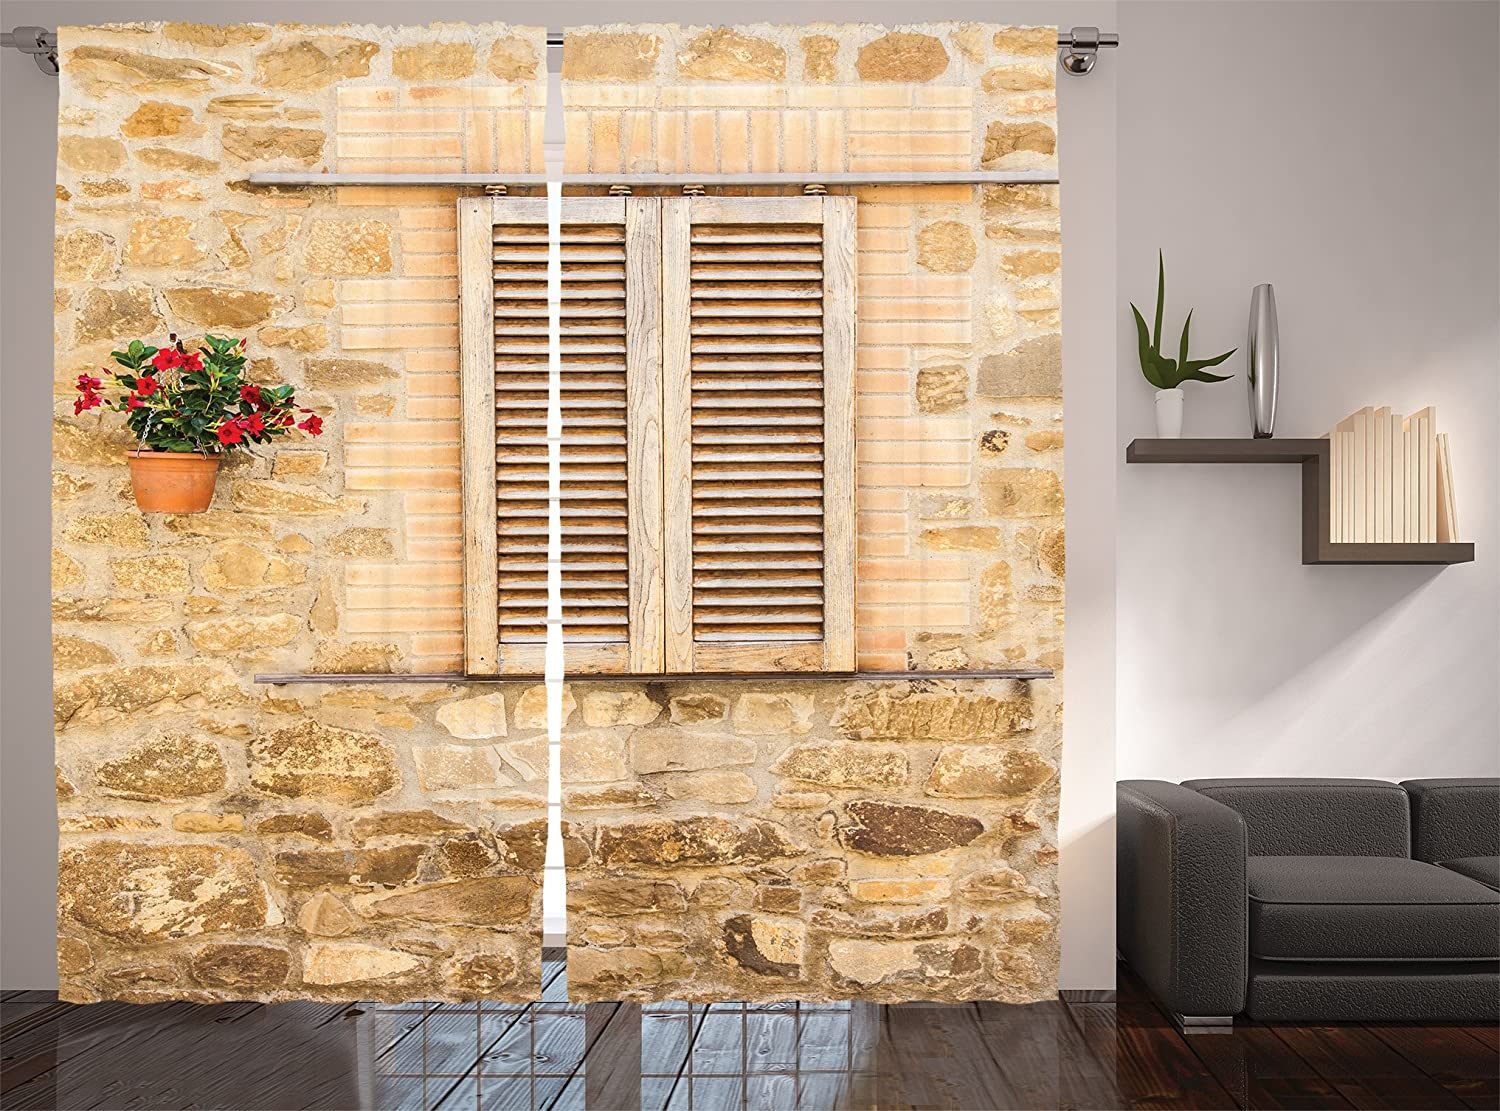 Amazon.com: Lunarable Tuscan Curtains, Rustic Stone House and Window ...